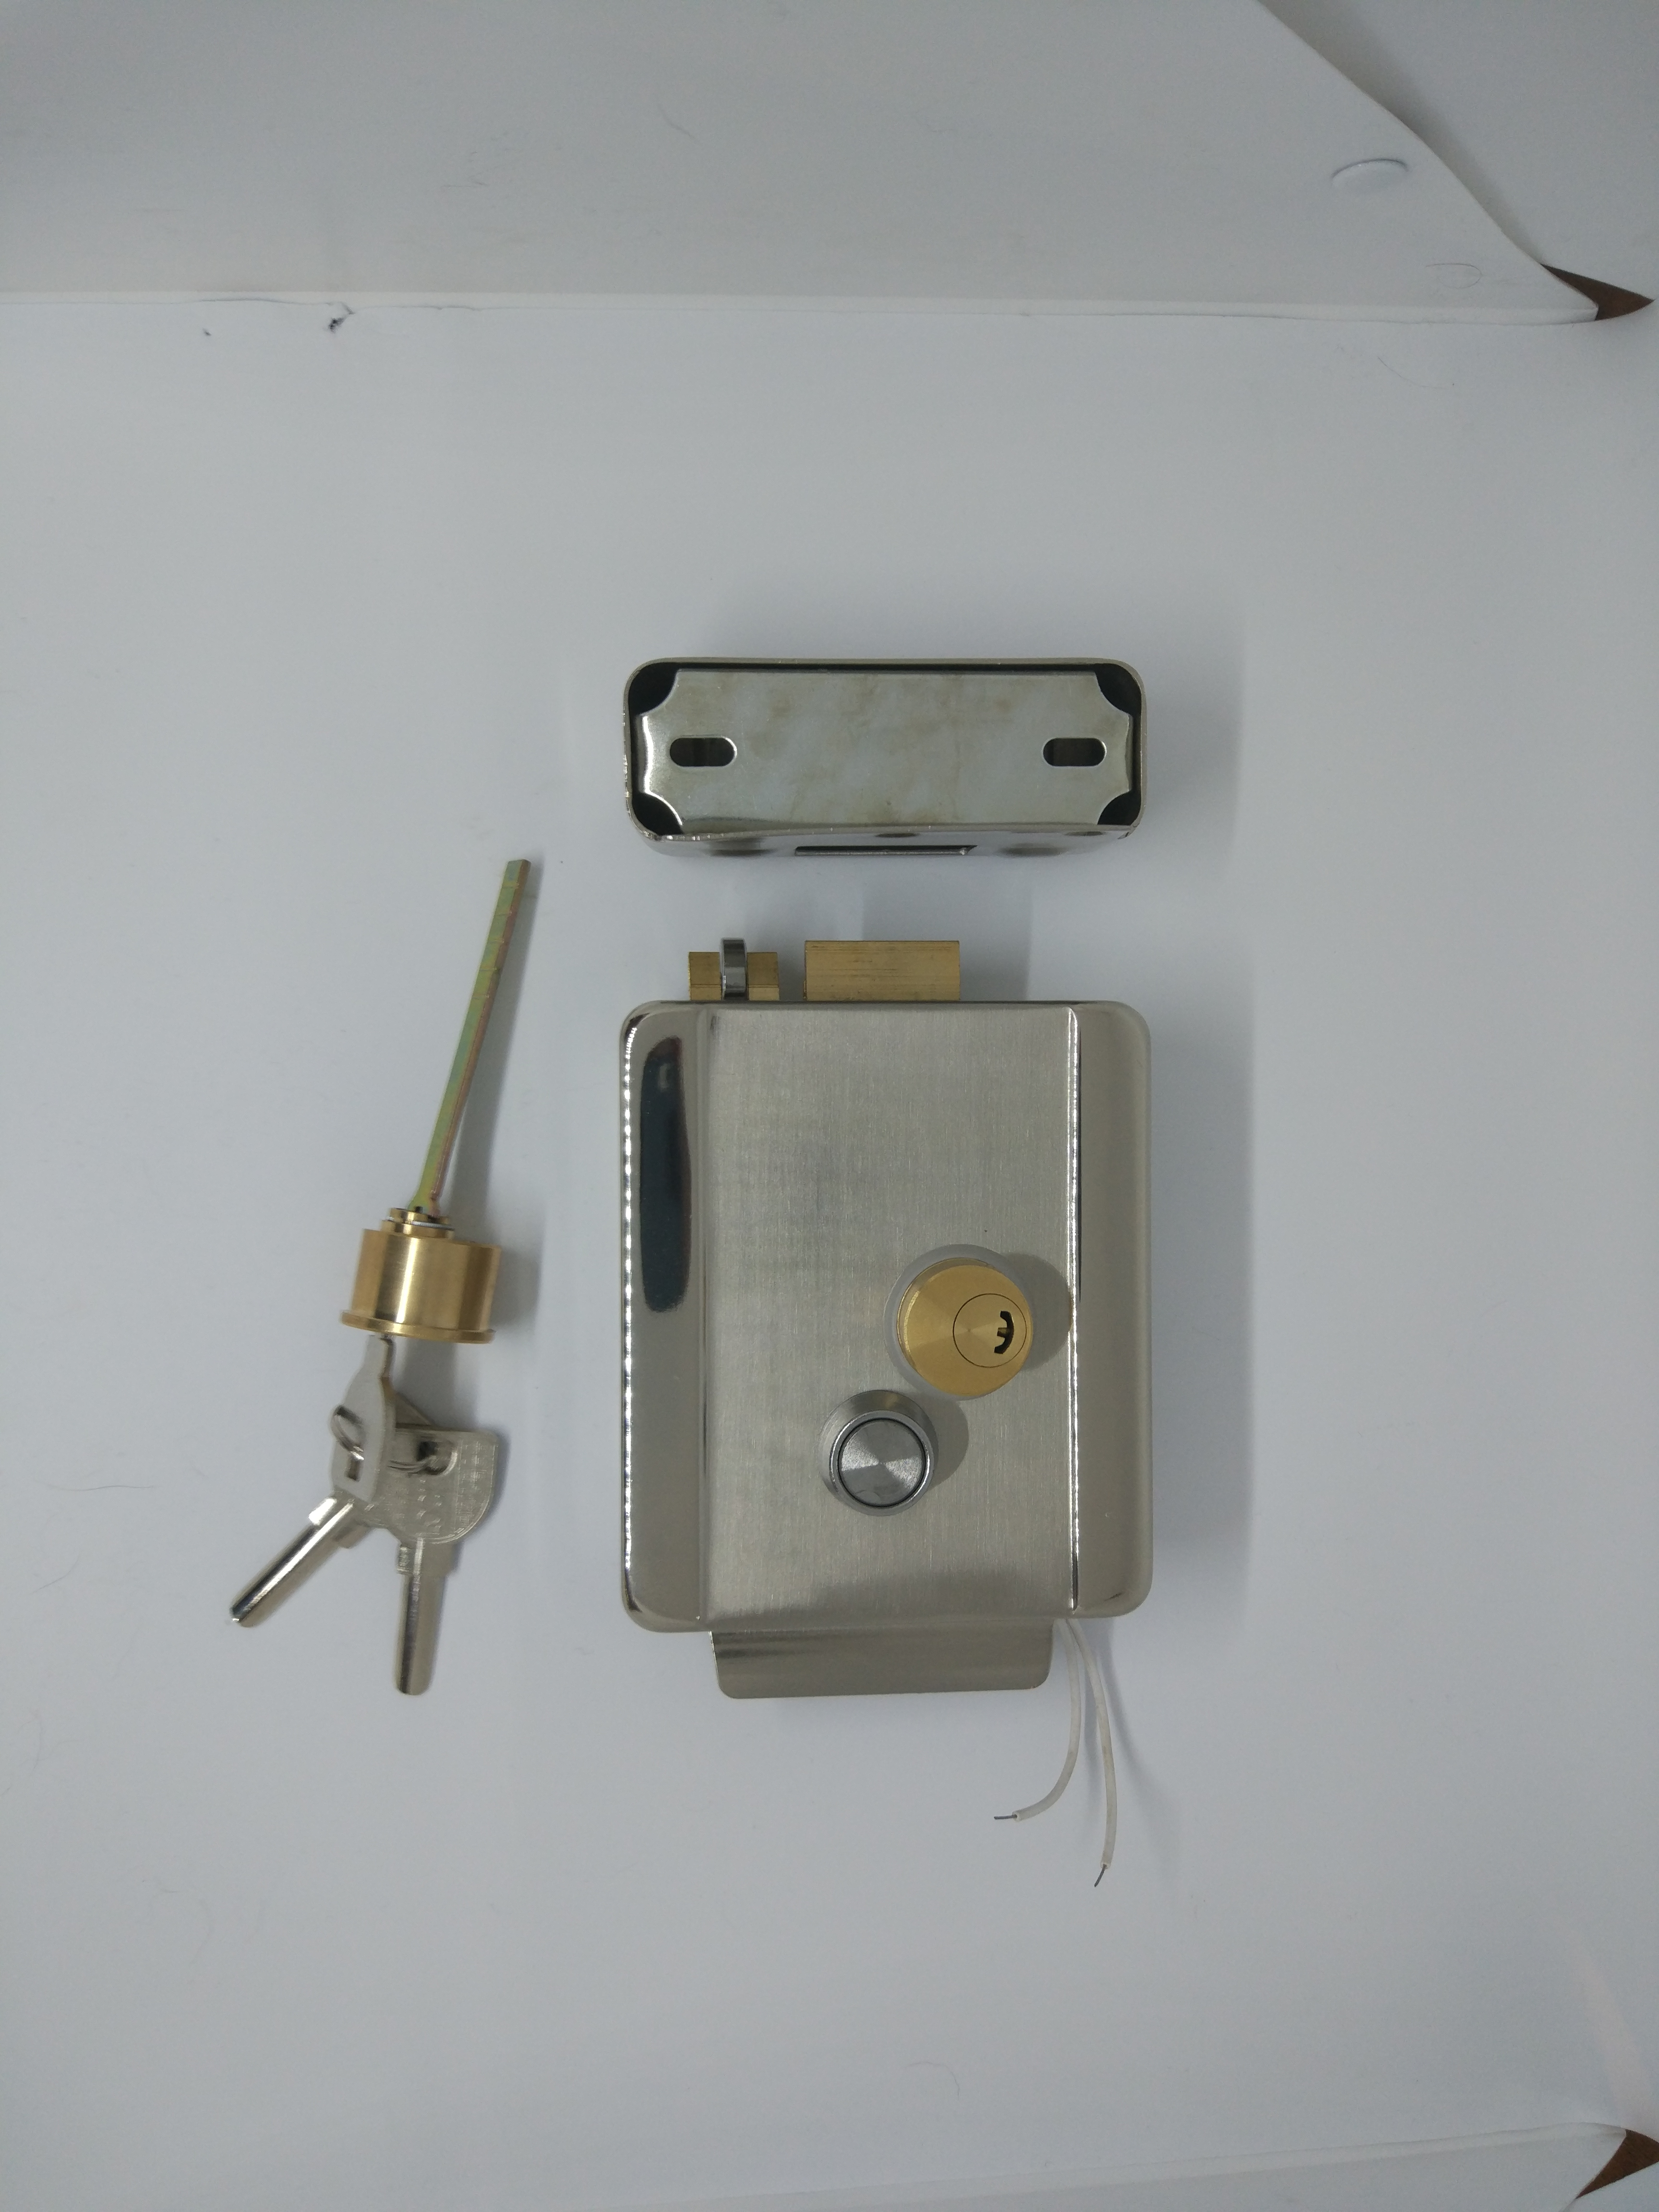 Laid On Electromechanical Lock FASS LOCK Ver.: 2.0